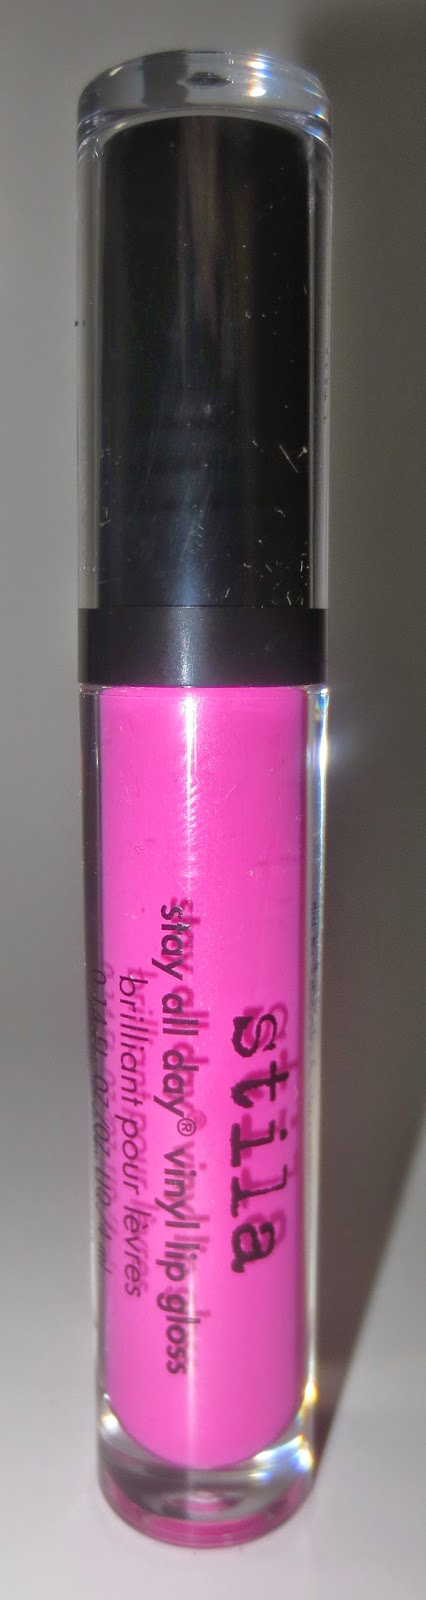 Stila Stay All Day Vinyl Lip Gloss Hot Pink Vinyl